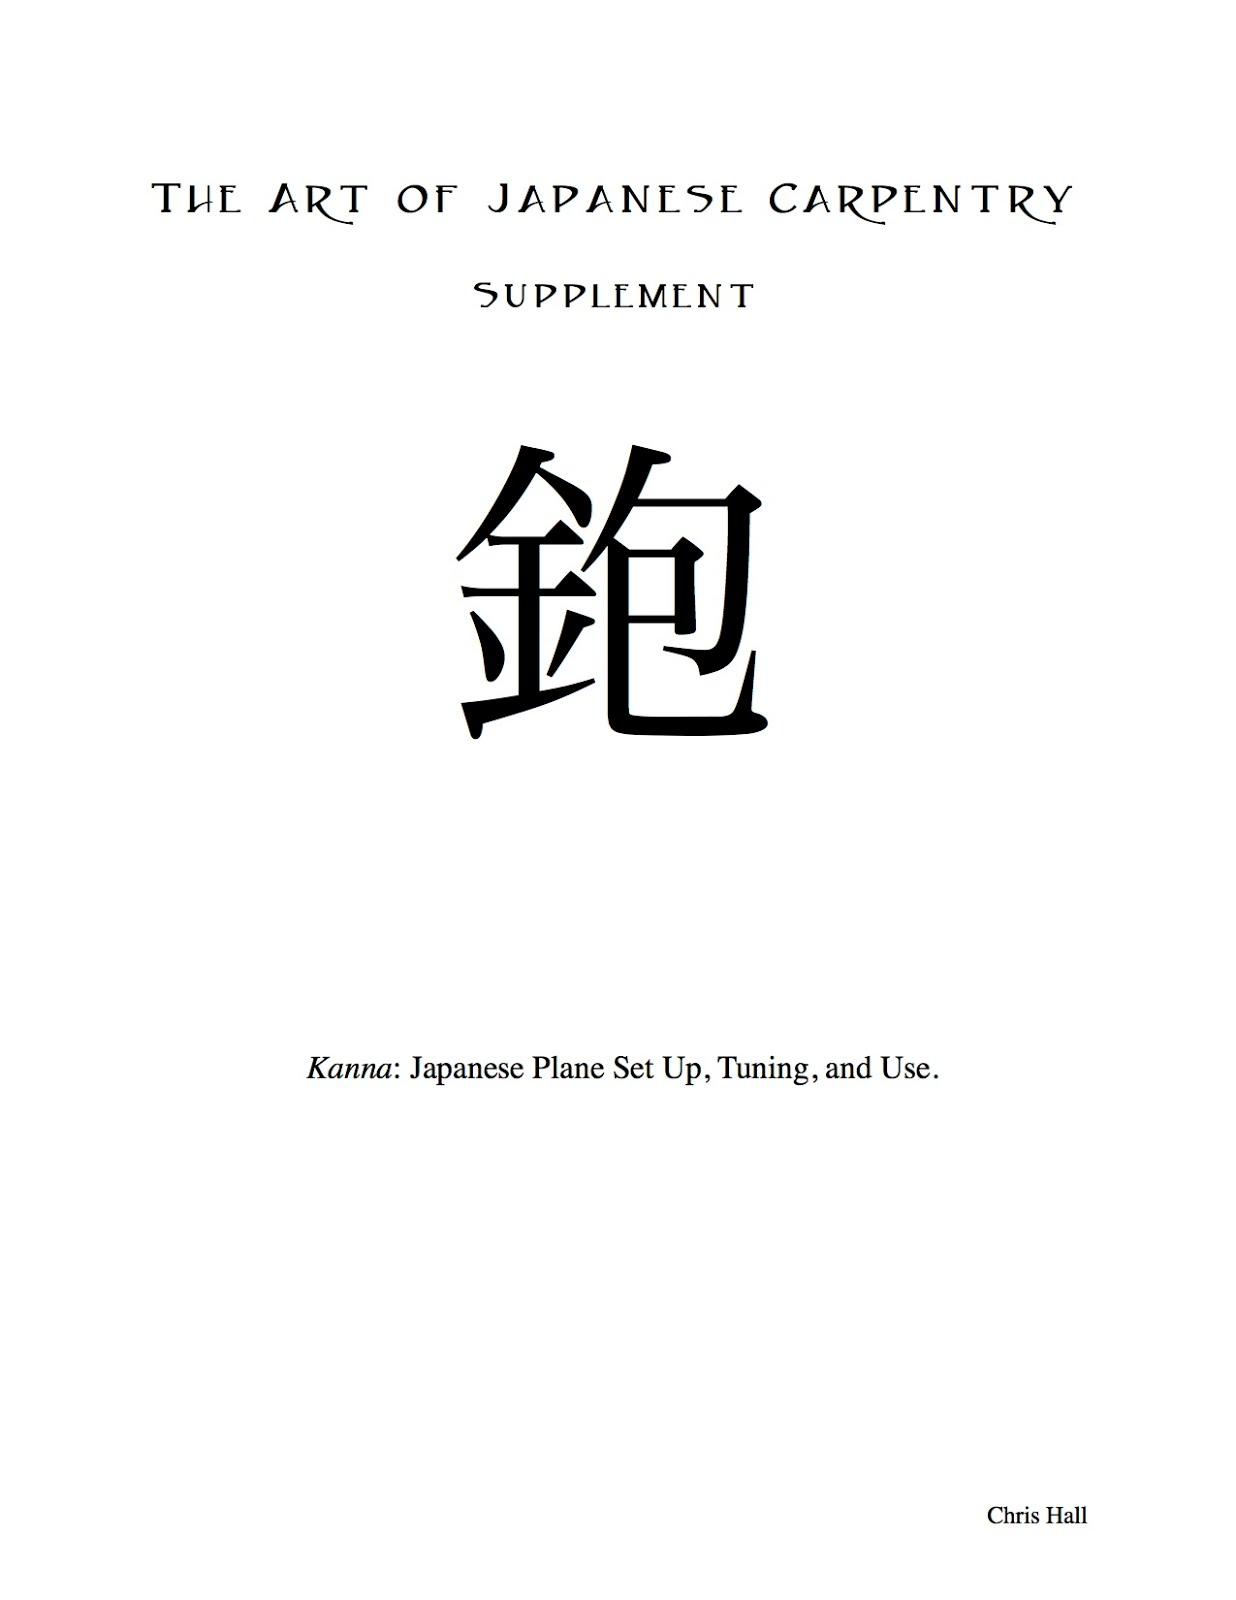 The Art of Japanese Carpentry Supplement